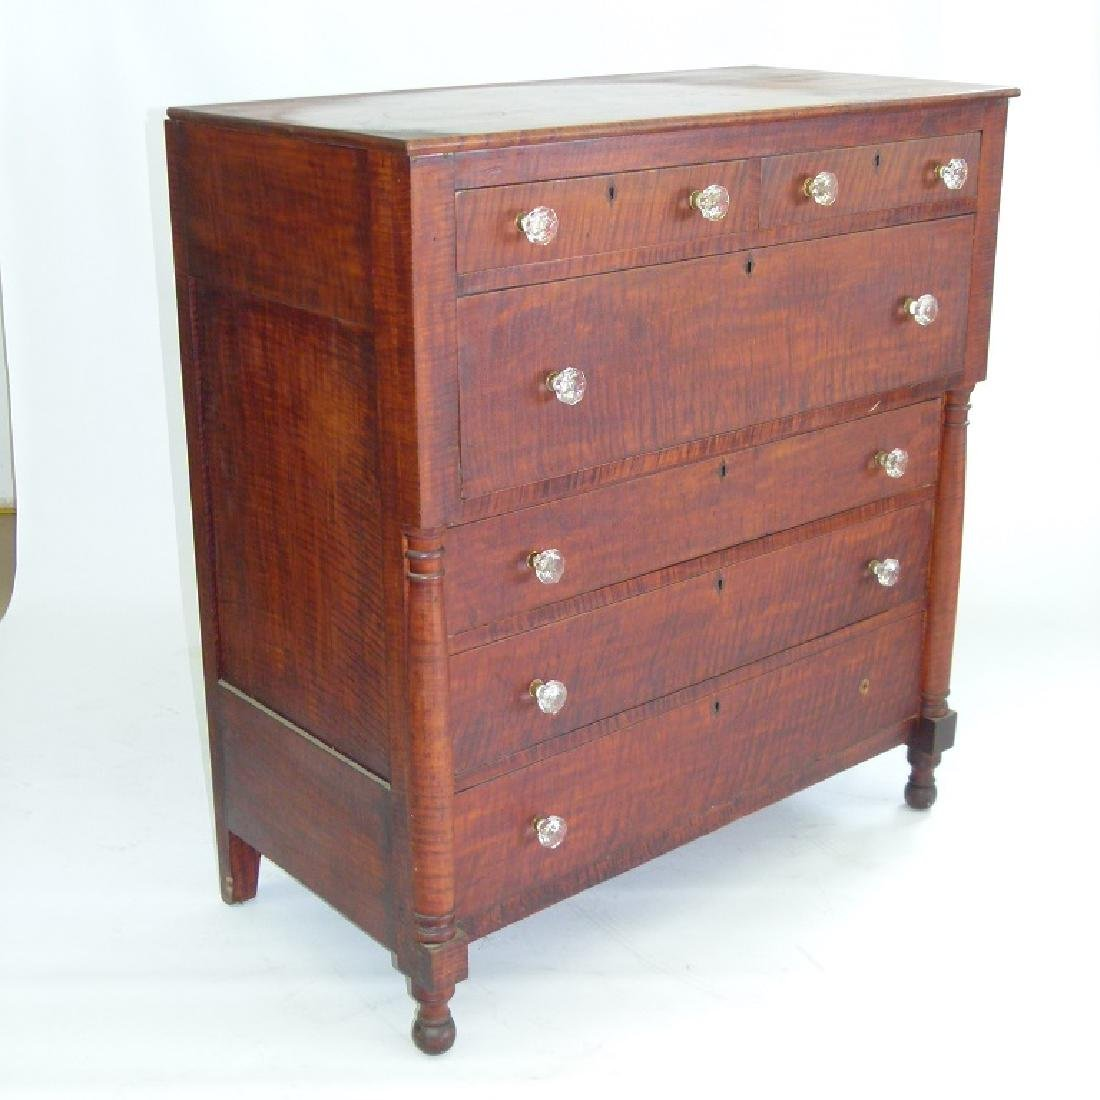 SHERATON CARVED TIGER MAPLE 2/4 CHEST OF DRAWERS